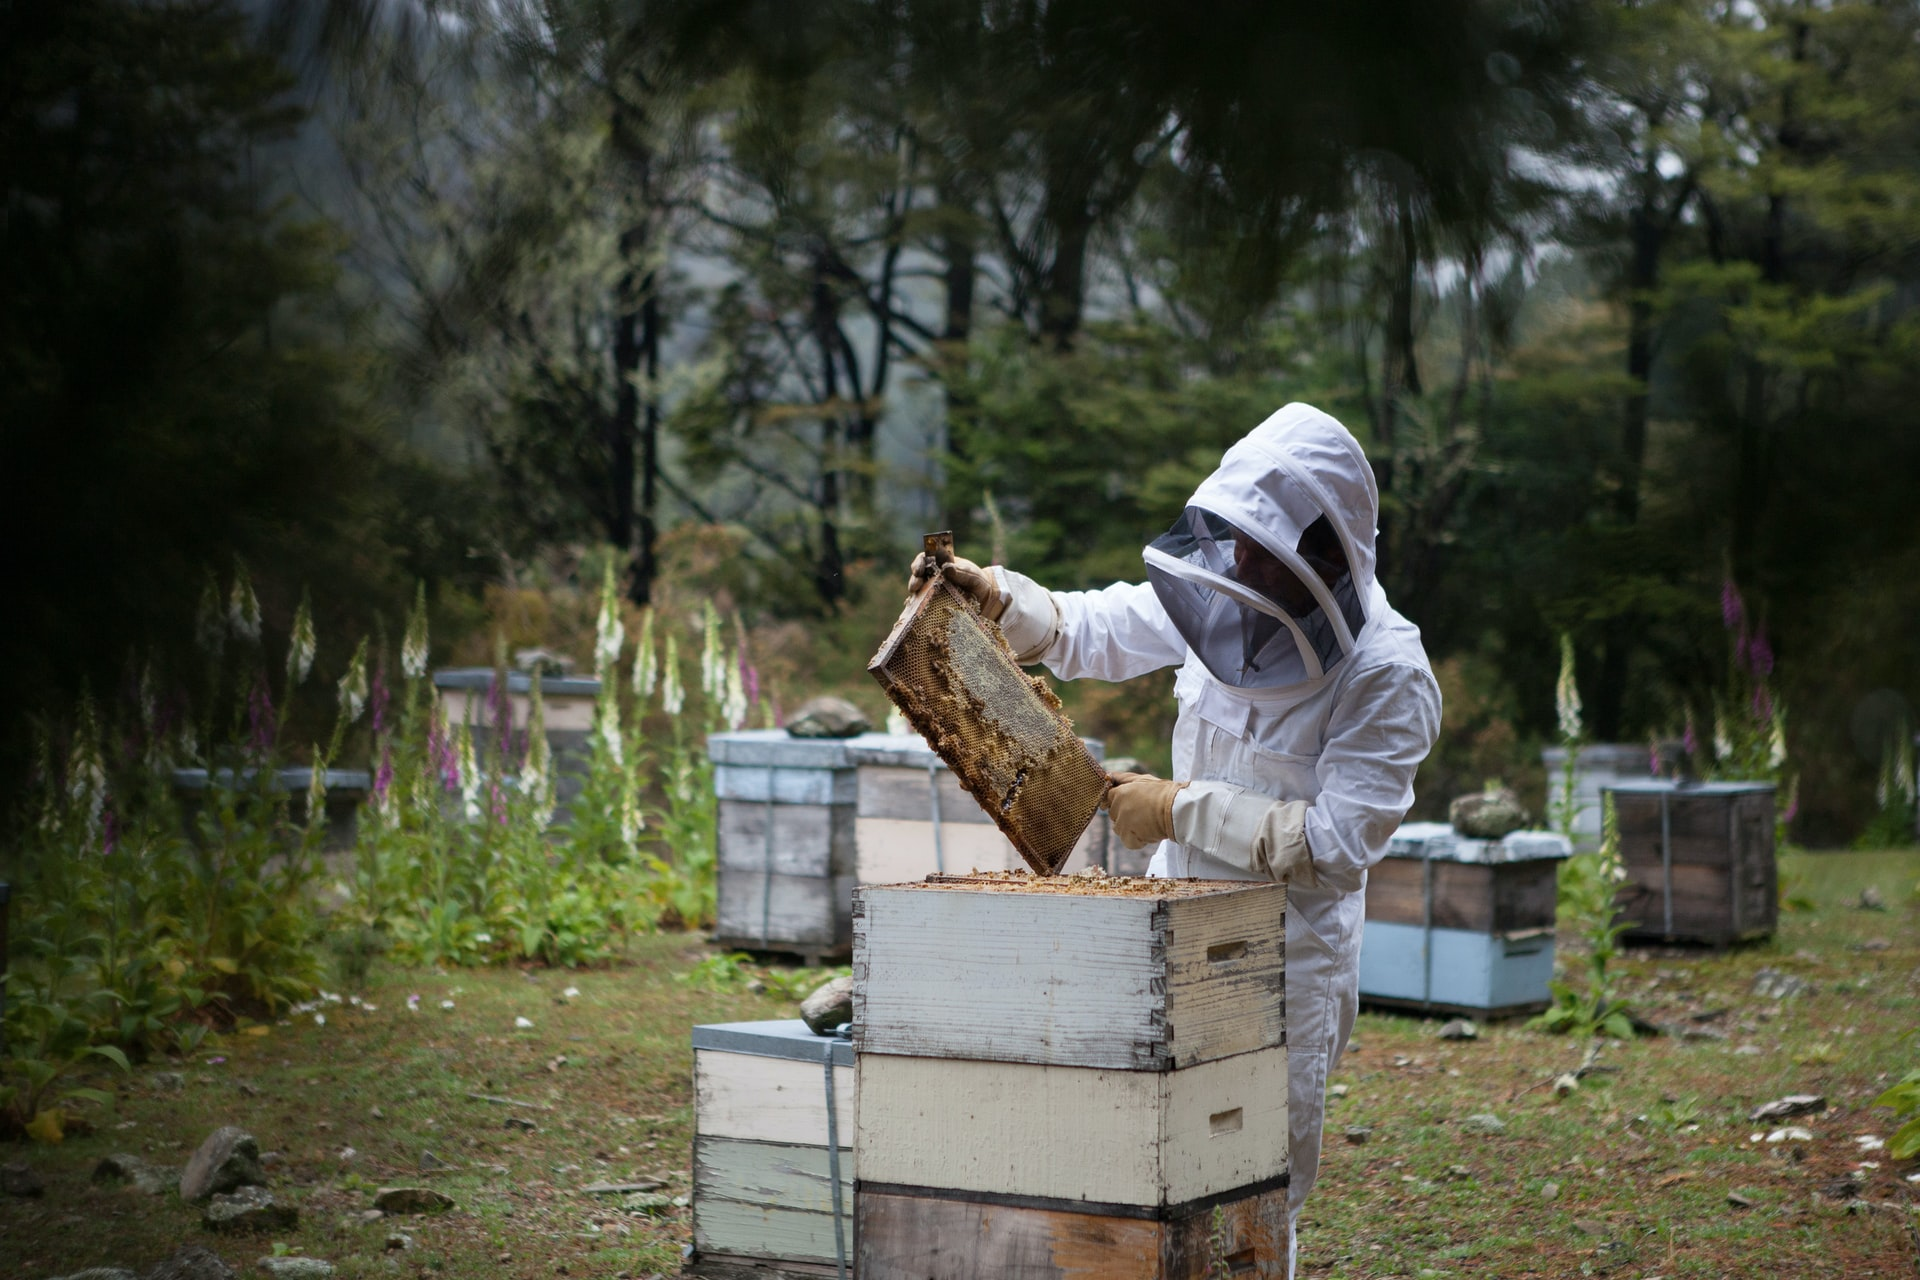 A beekeeper harvesting honey from a hive in a bee suit